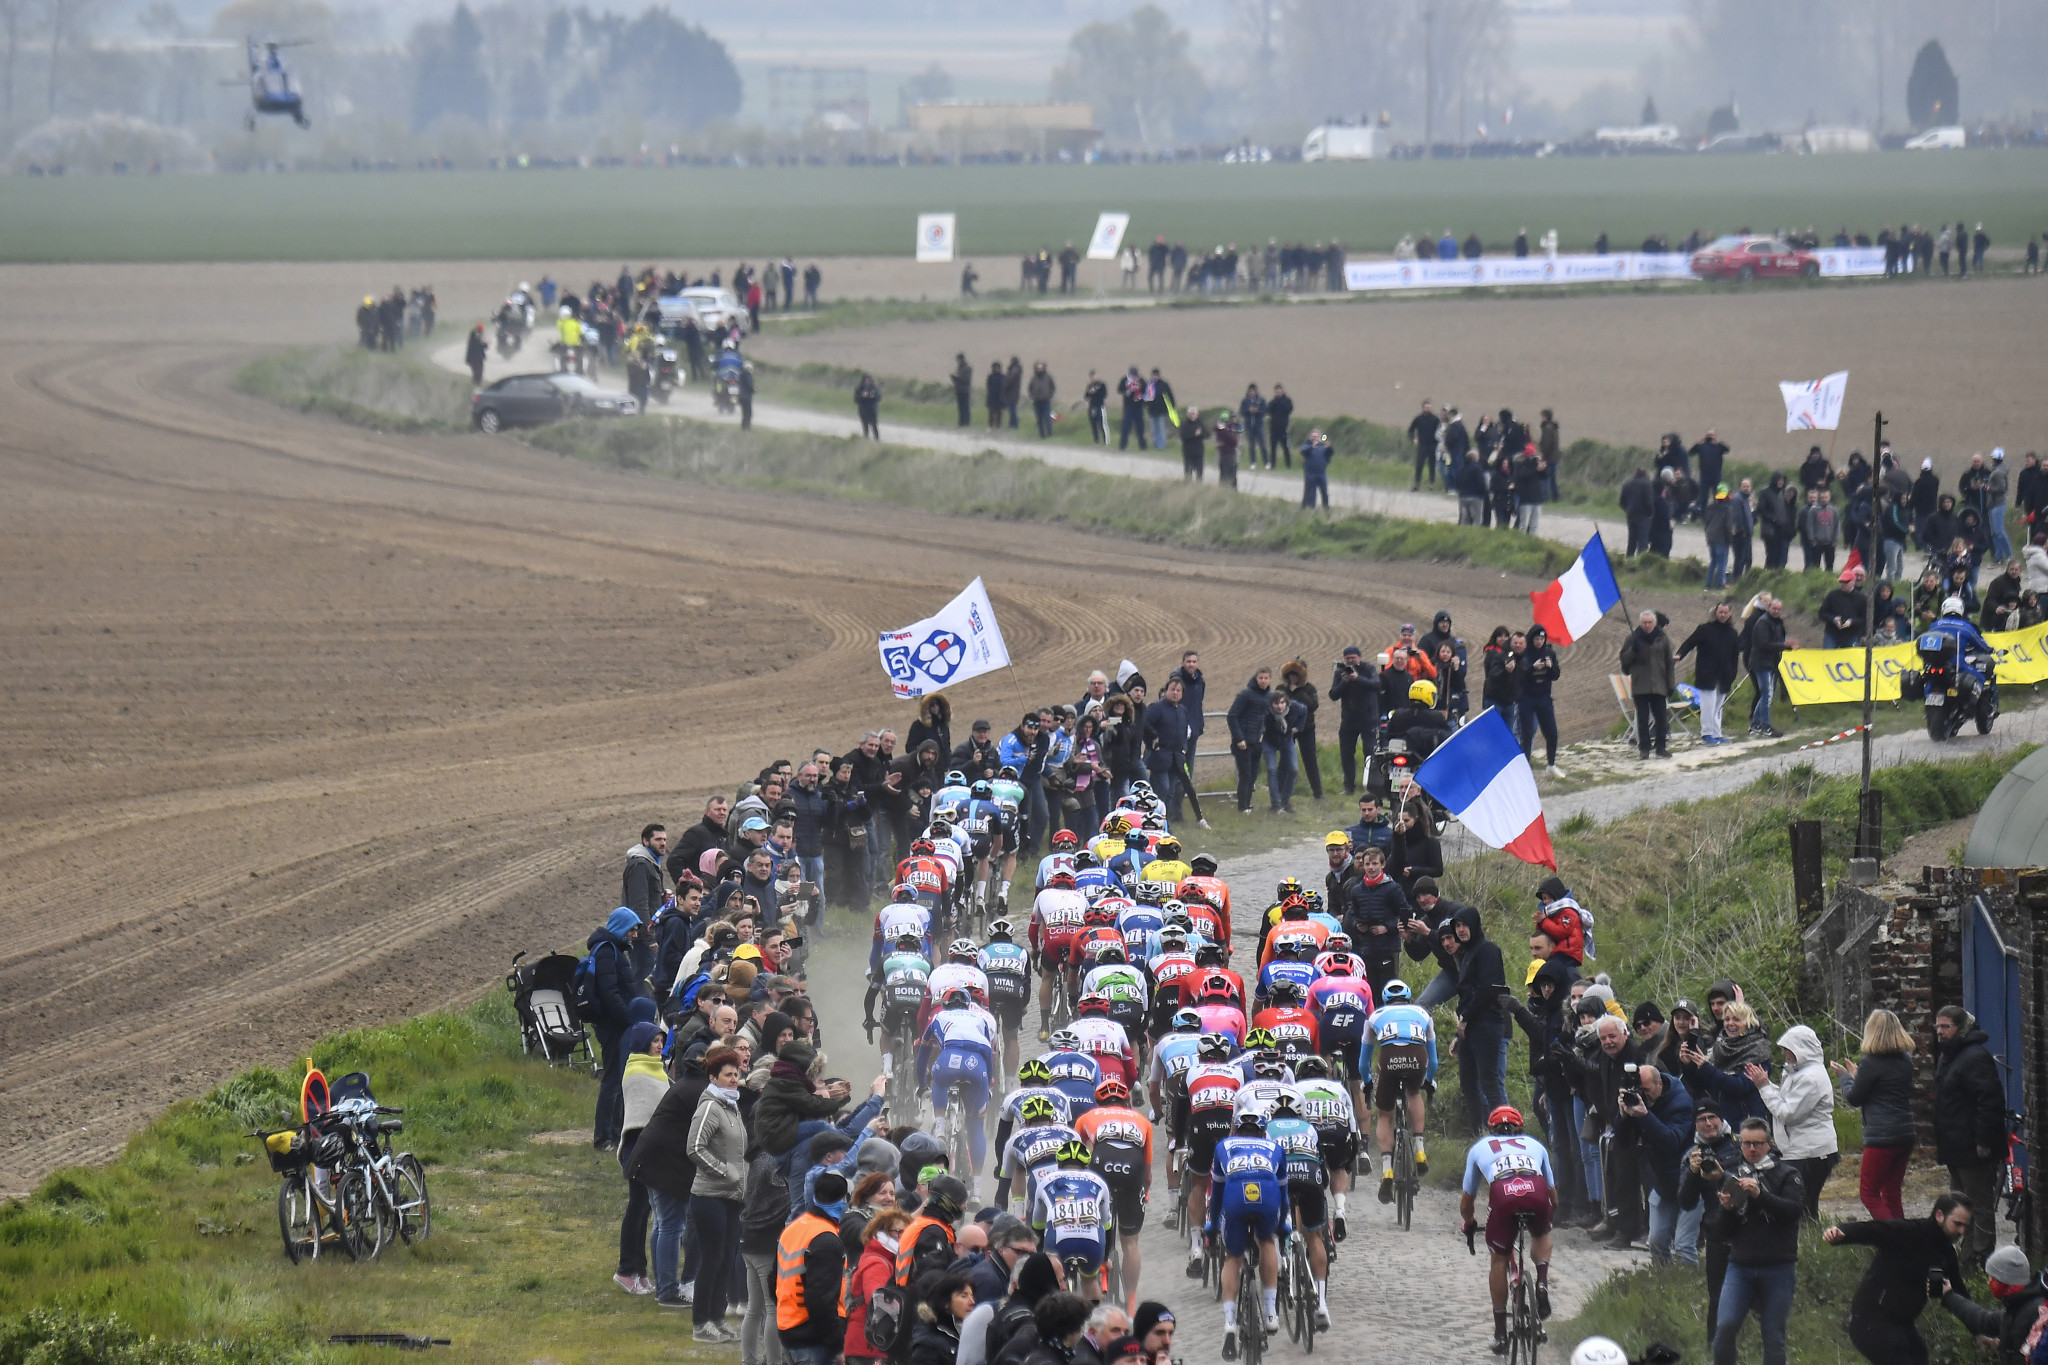 Paris-Roubaix ill not take place for the first time since 1942 after being cancelled because of the coronavirus pandemic ©Getty Images